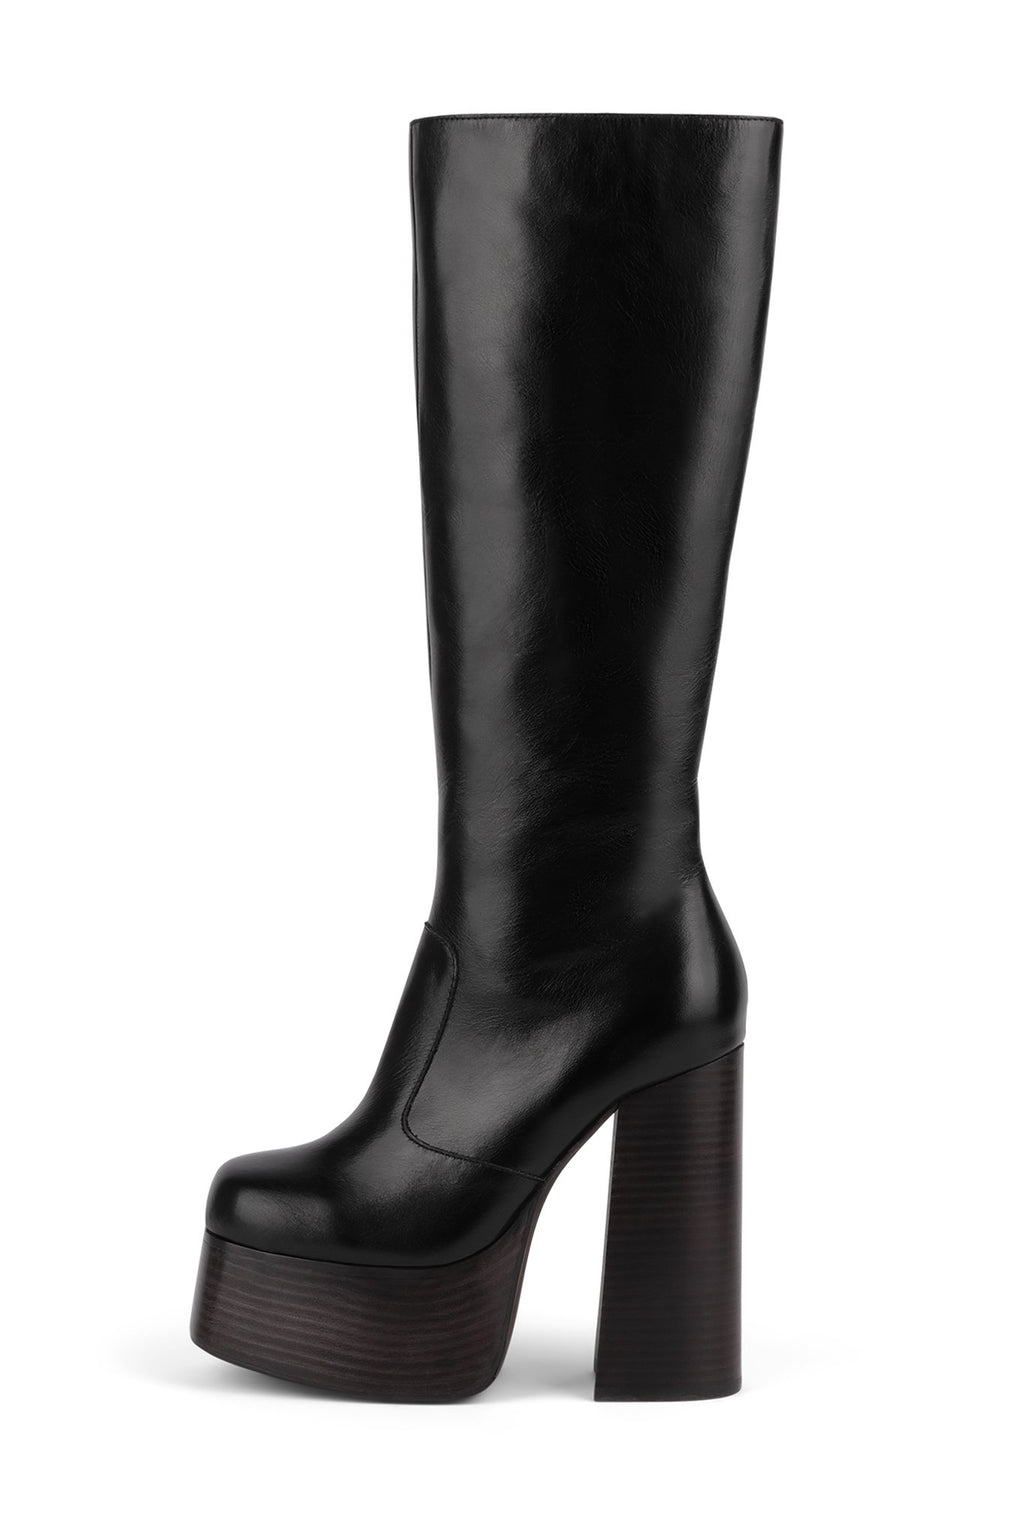 HEY-JOE Knee-High Boot HS Black 6